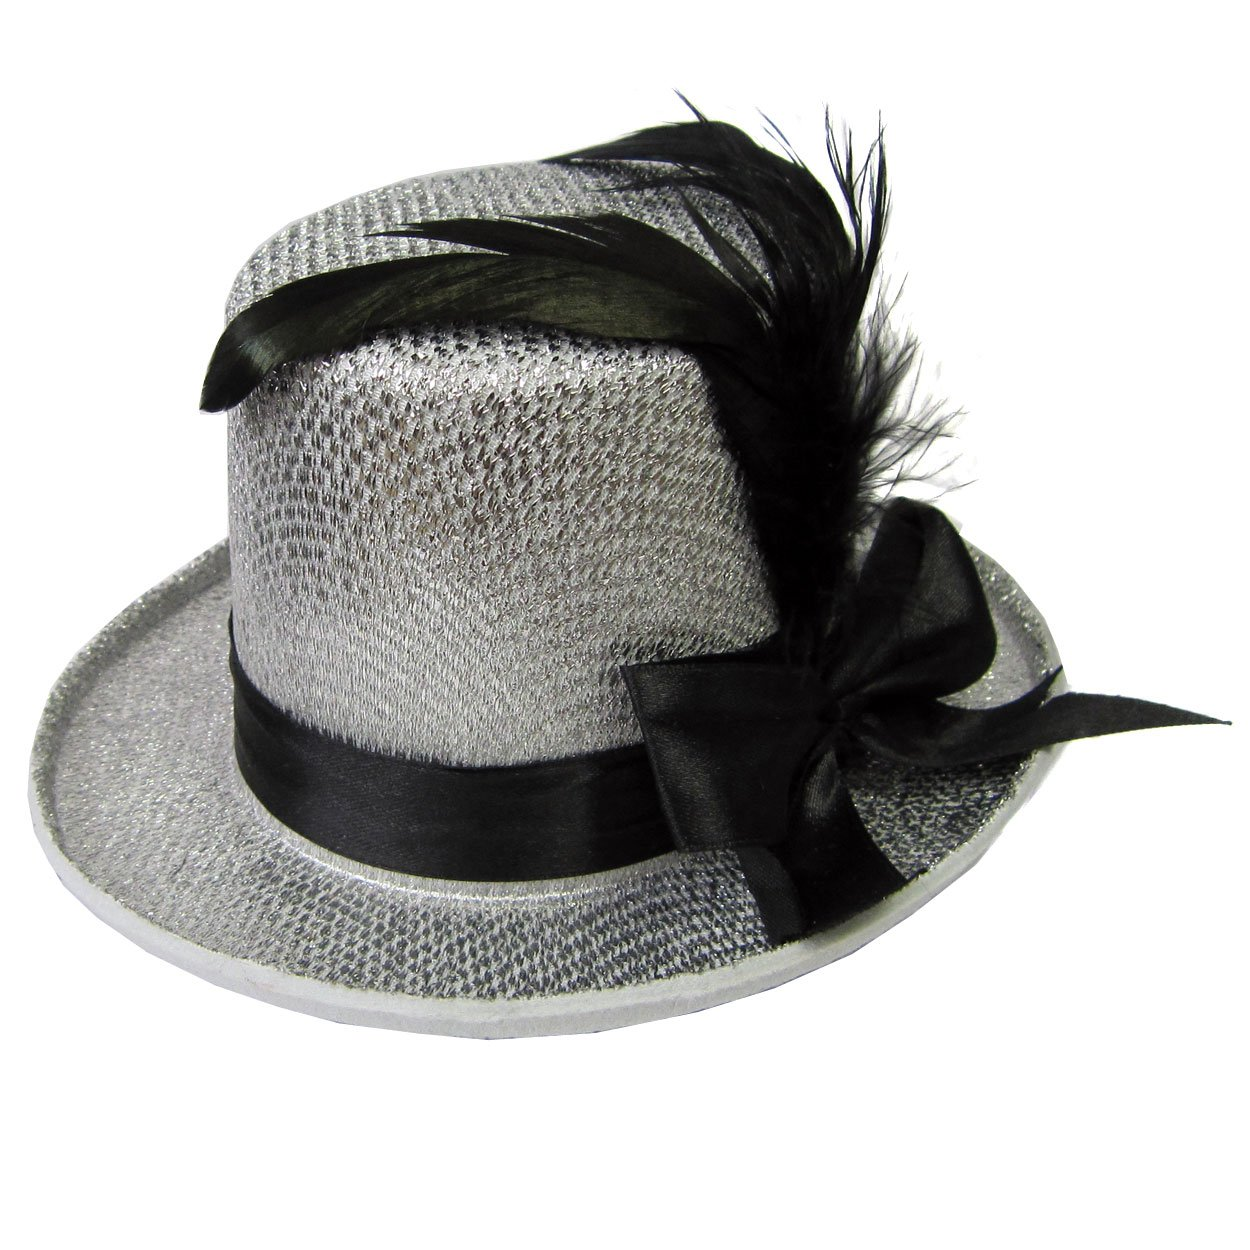 Jacobson Hat Company Women's Adult Mini Glitter Top Hat Headband Black 24610 BKAJ